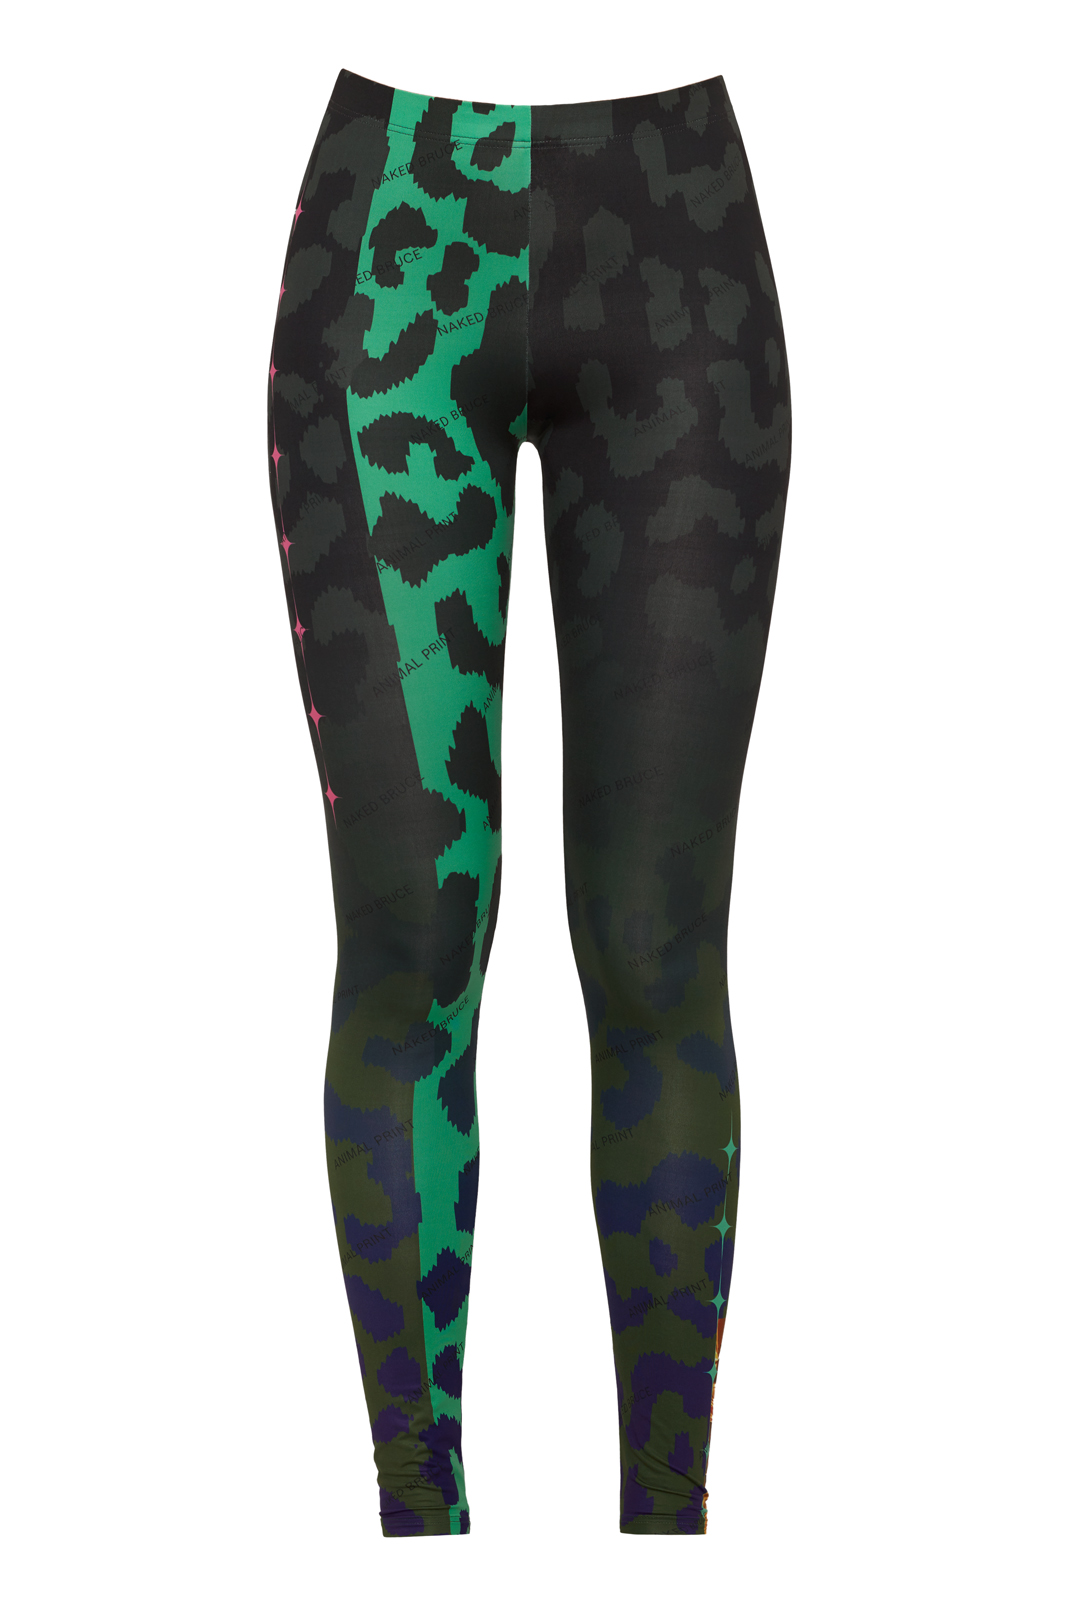 AZRA Leggings by Naked Bruce on curated-crowd.com